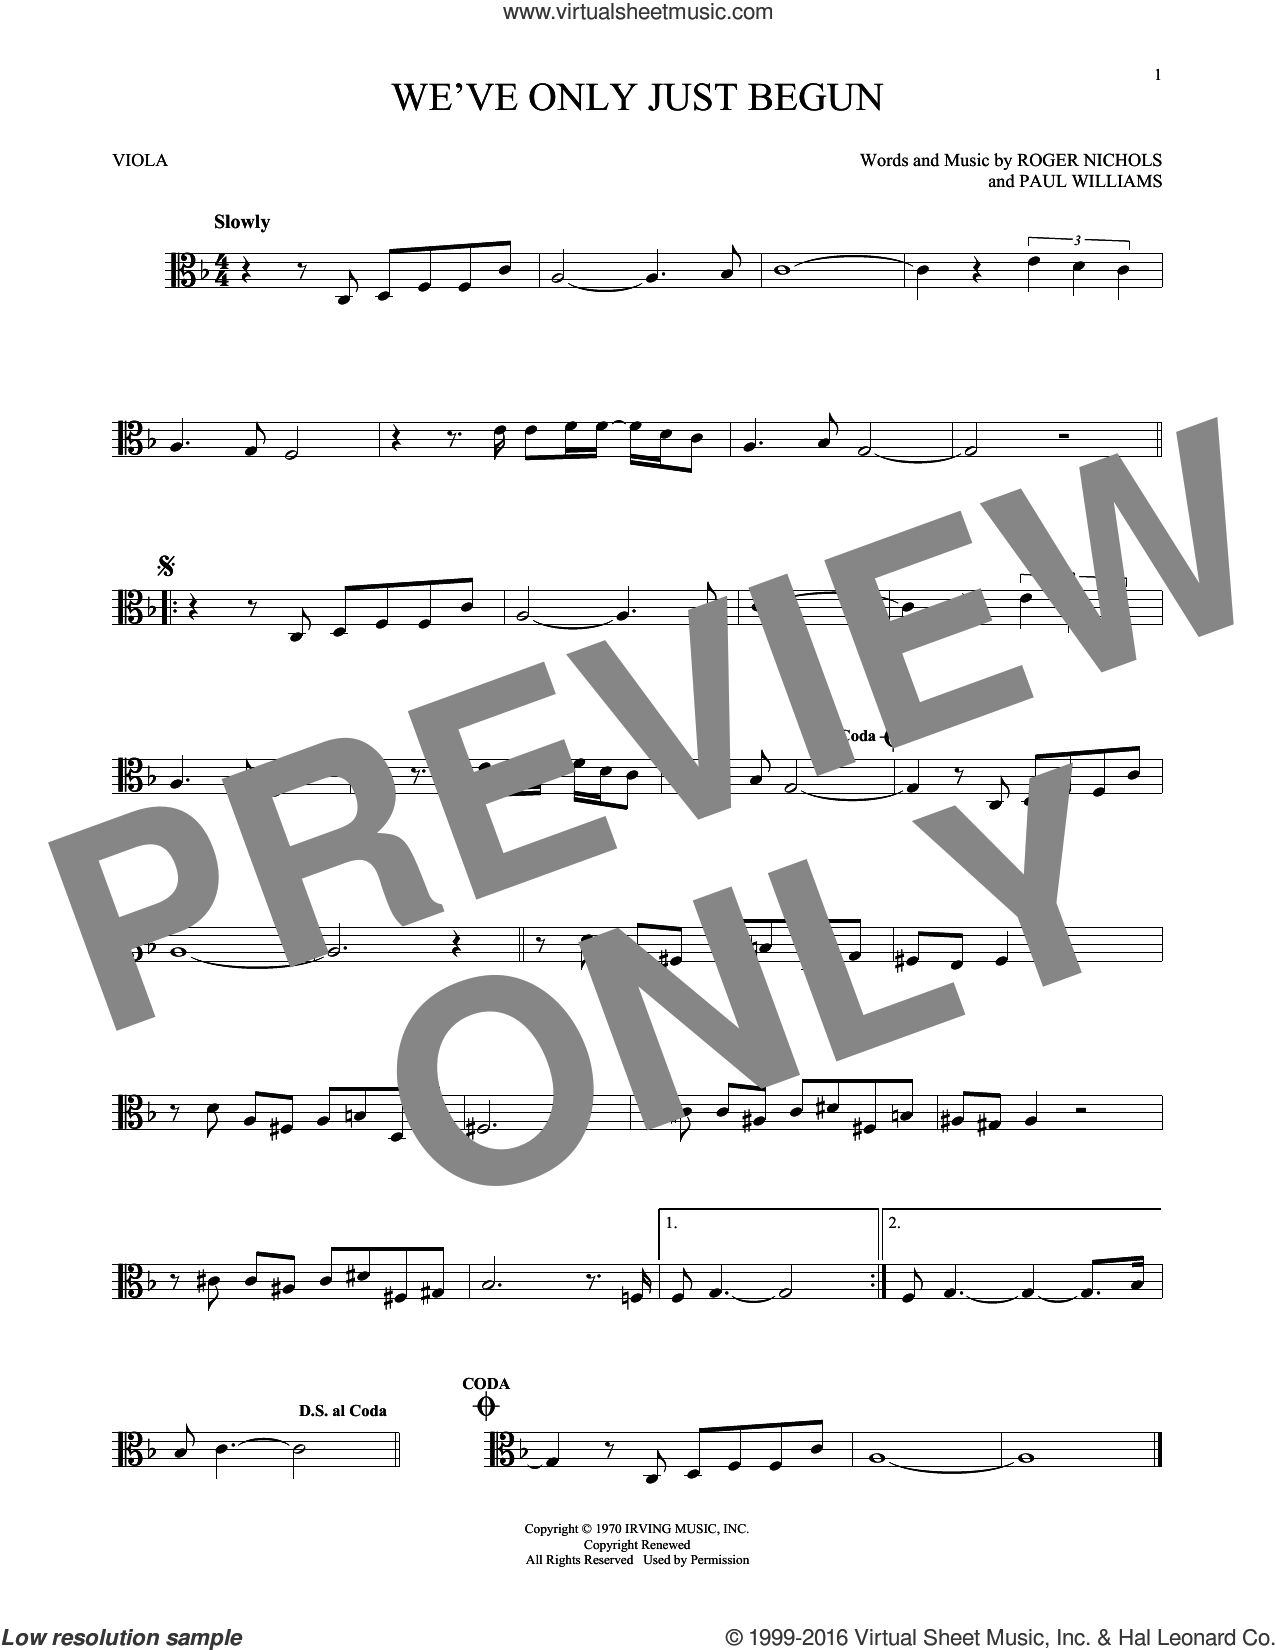 We've Only Just Begun sheet music for viola solo by Paul Williams, Carpenters and Roger Nichols, intermediate skill level